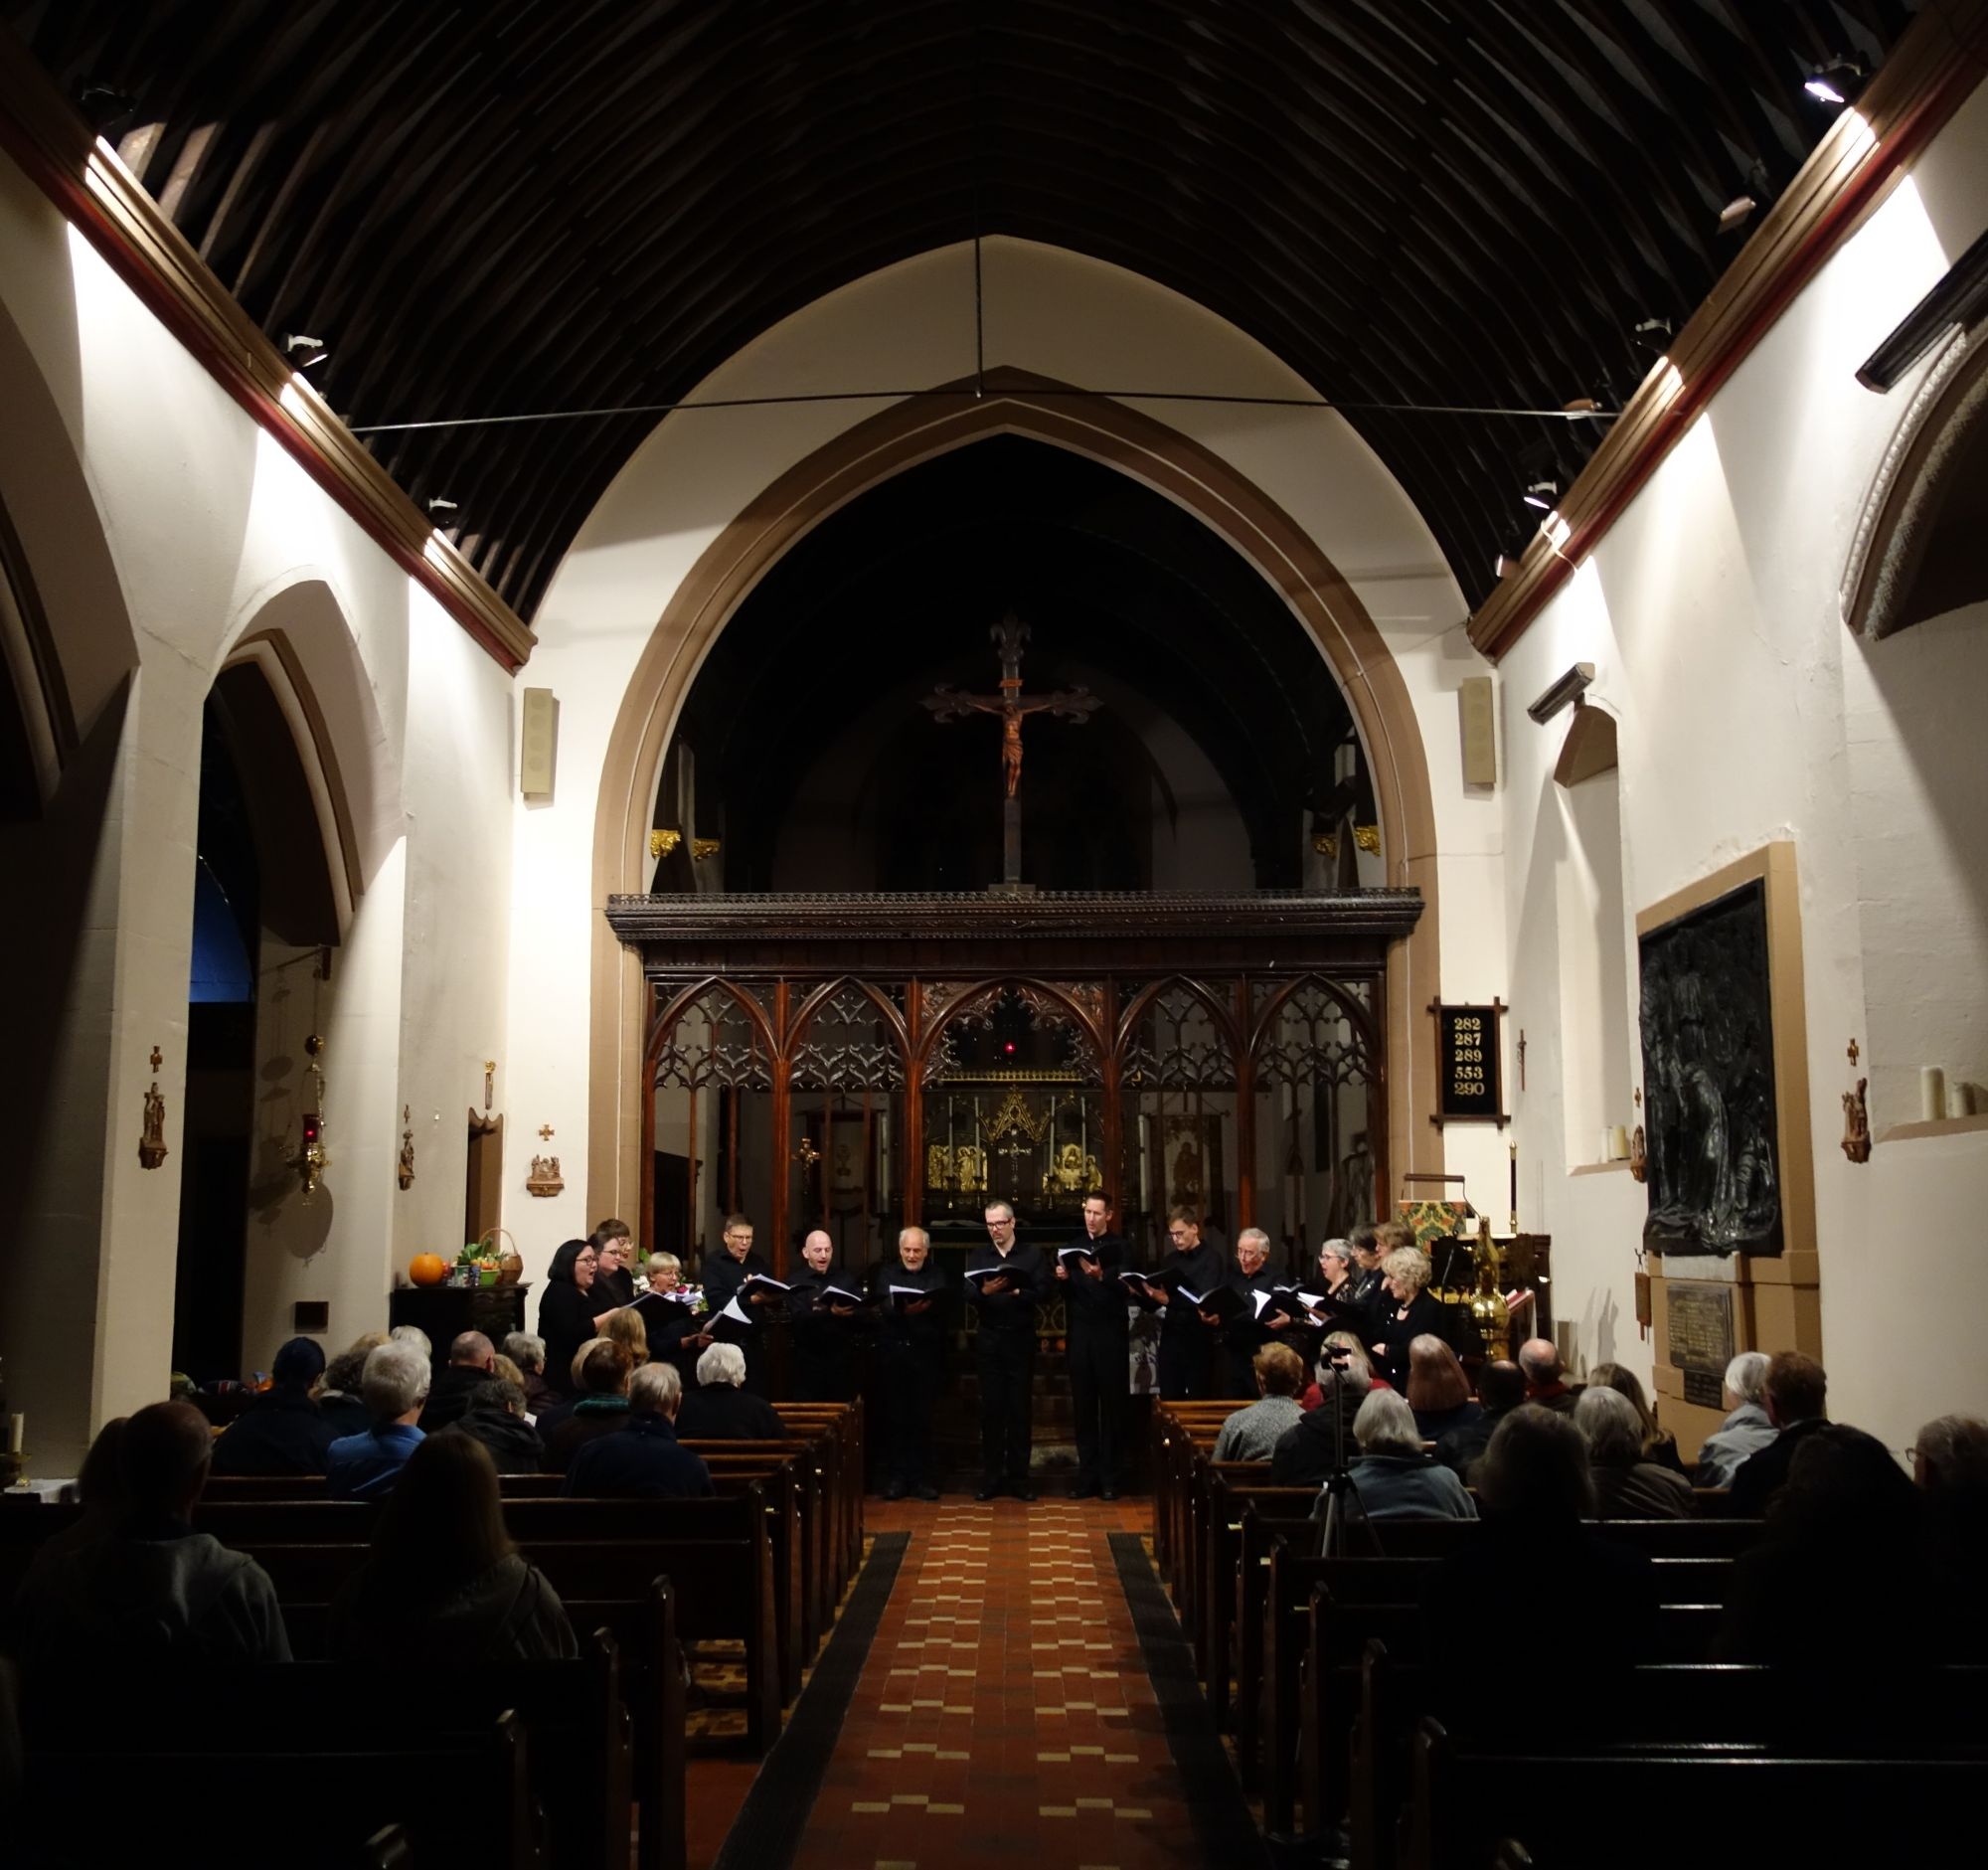 20th October 2018 Concert at St Martin's Church